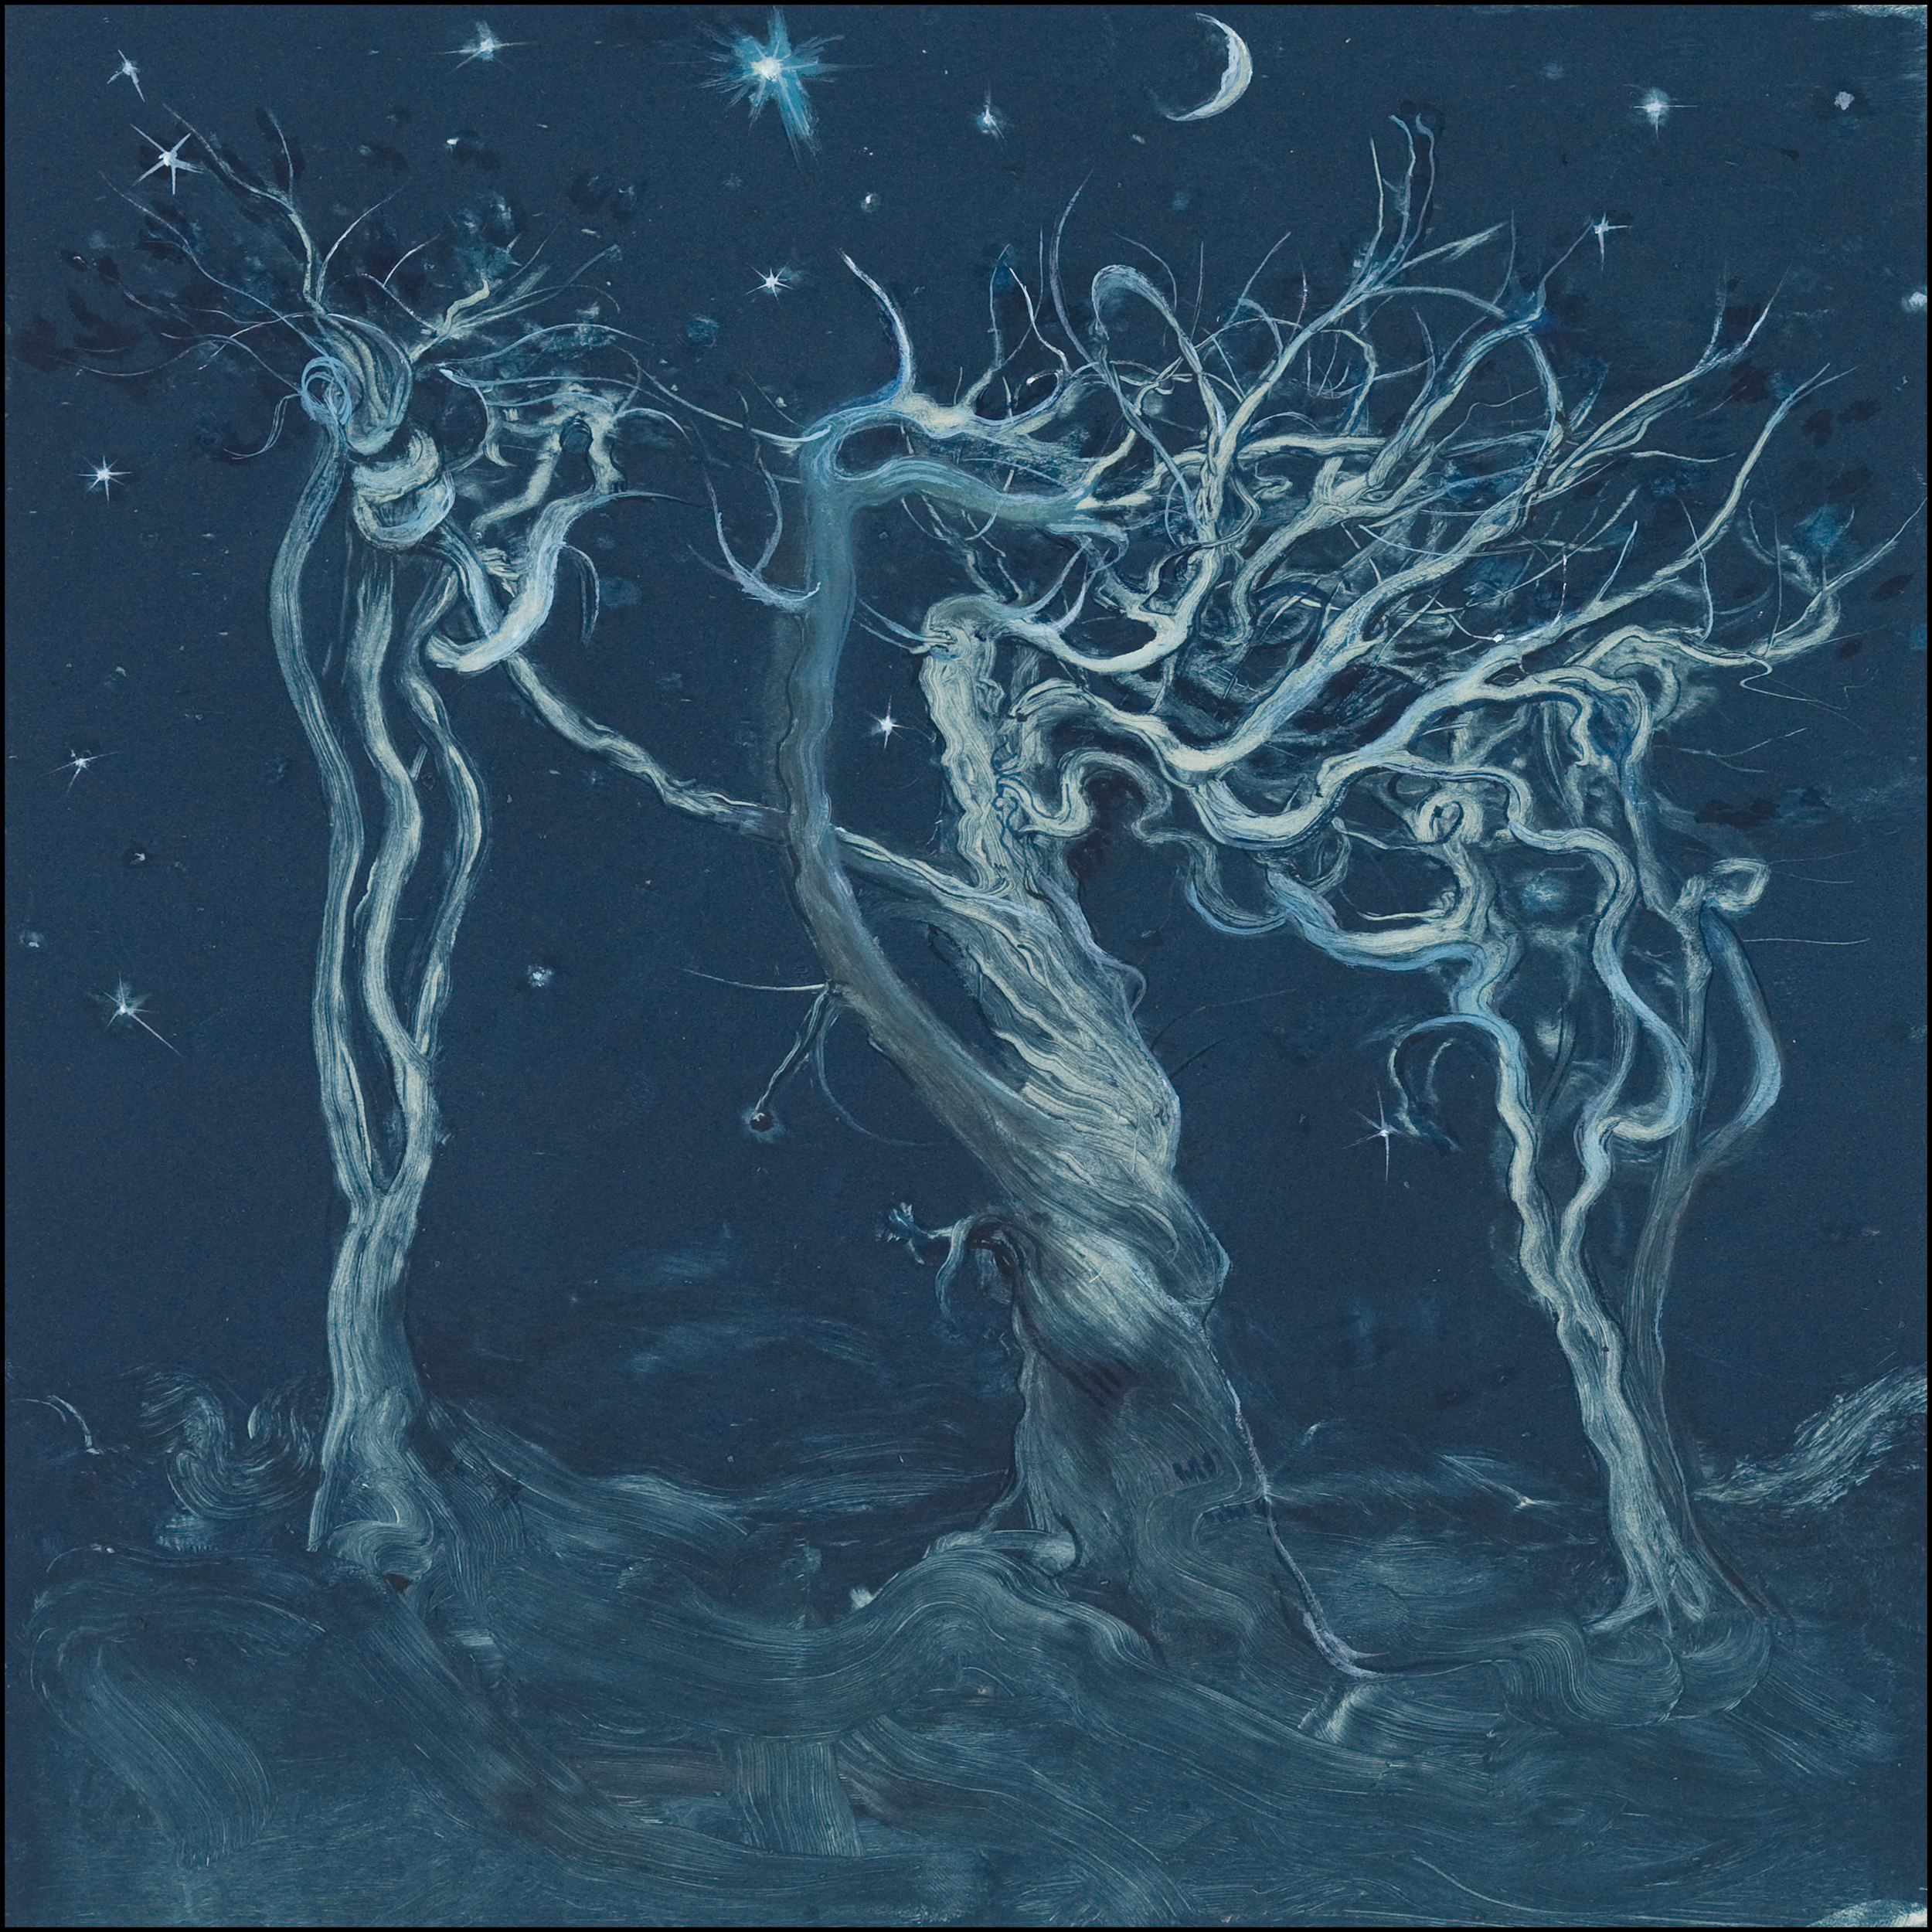 Album cover art painted by Inka Essenhigh (Ancient Trees, ©2010)